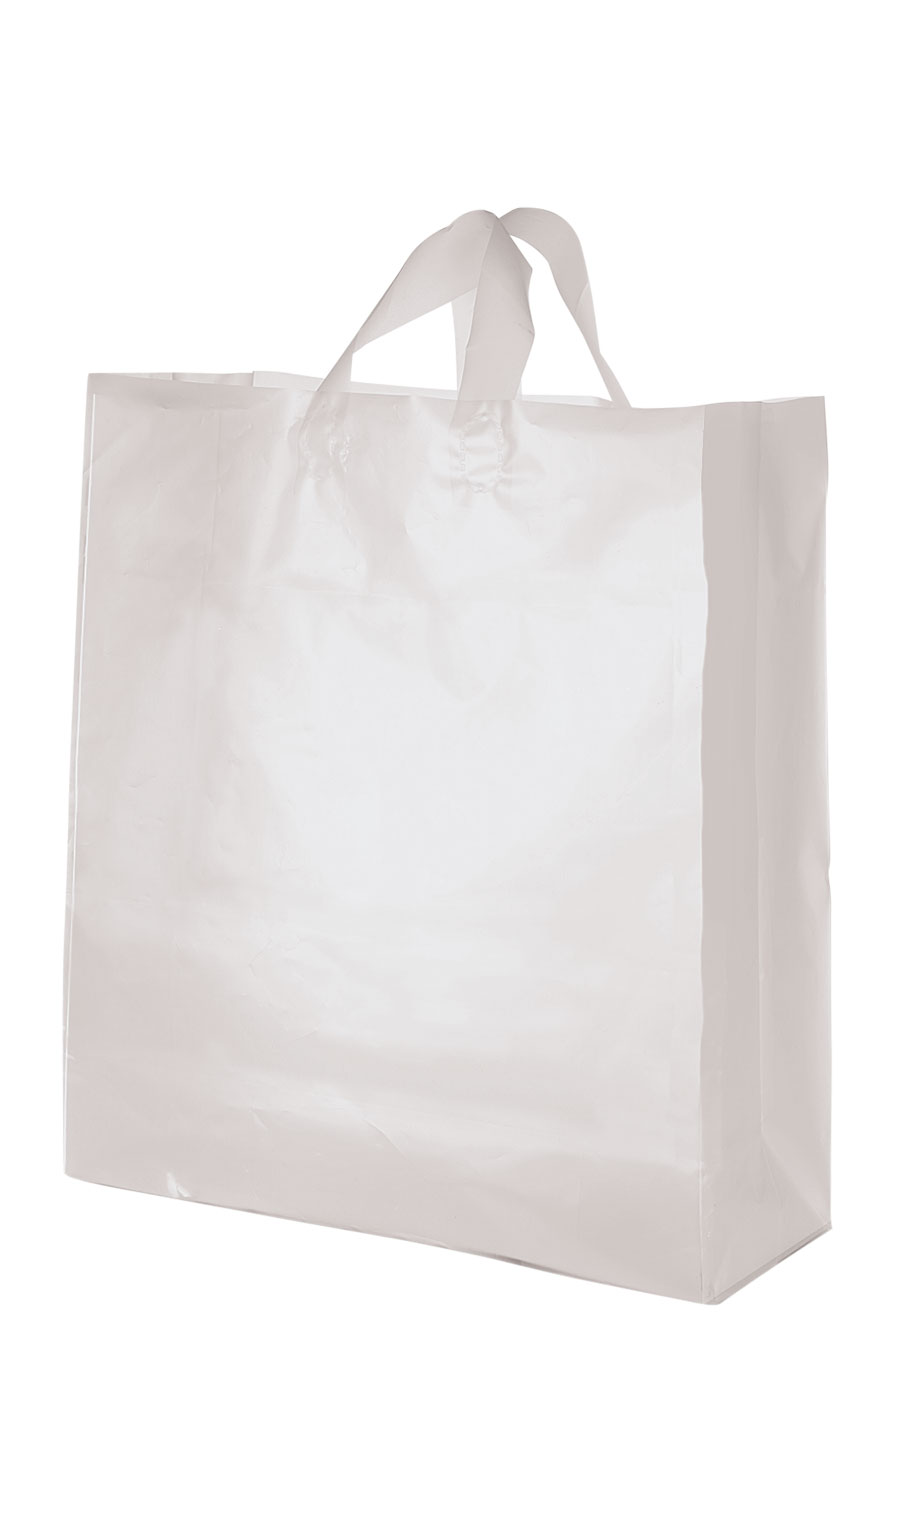 "f3ebce97b2 Jumbo Clear Frosted Plastic Shopping Bags - 16"" x 6"" x 19"" - Case of 100 -  Walmart.com"